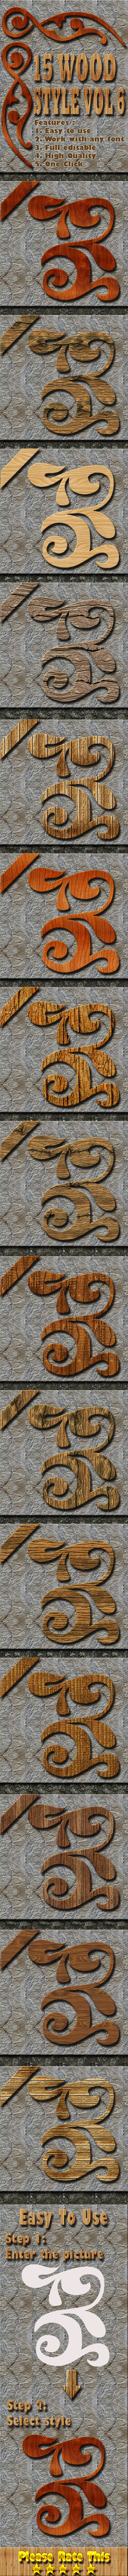 15 Wood Text Effect Style Vol 6 - Styles Photoshop